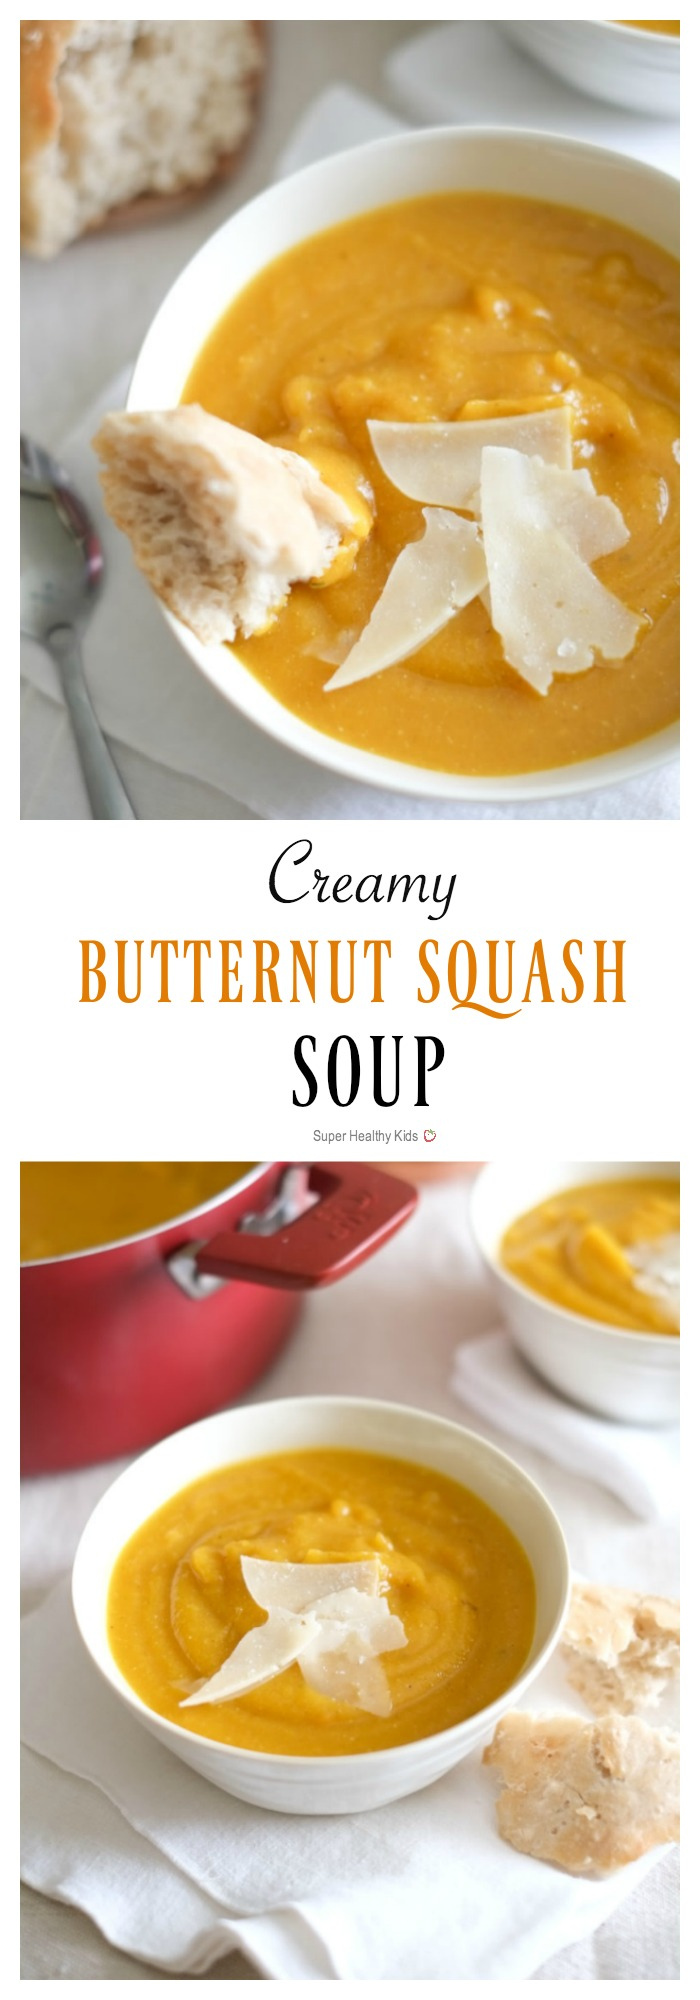 Creamy Butternut Squash Soup. Creamy, warm butternut squash soup embodies fall. The best part? You won't feel like you need to hibernate afterward because it's also light and healthy. http://www.superhealthykids.com/creamy-butternut-squash-soup-recipe/